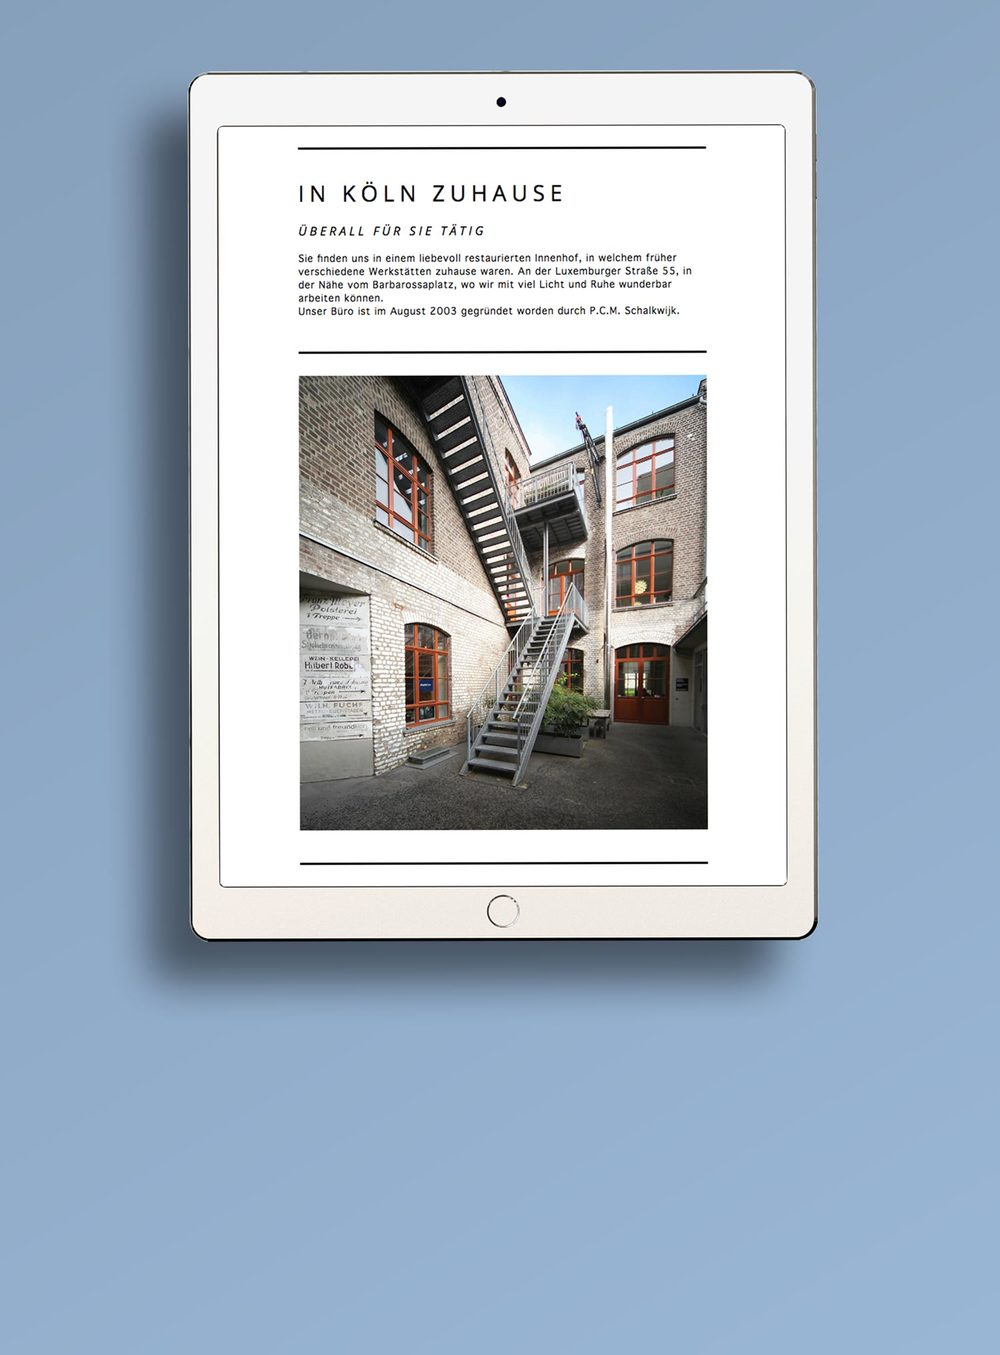 Responsive architecture website on a white iPad on a blue background